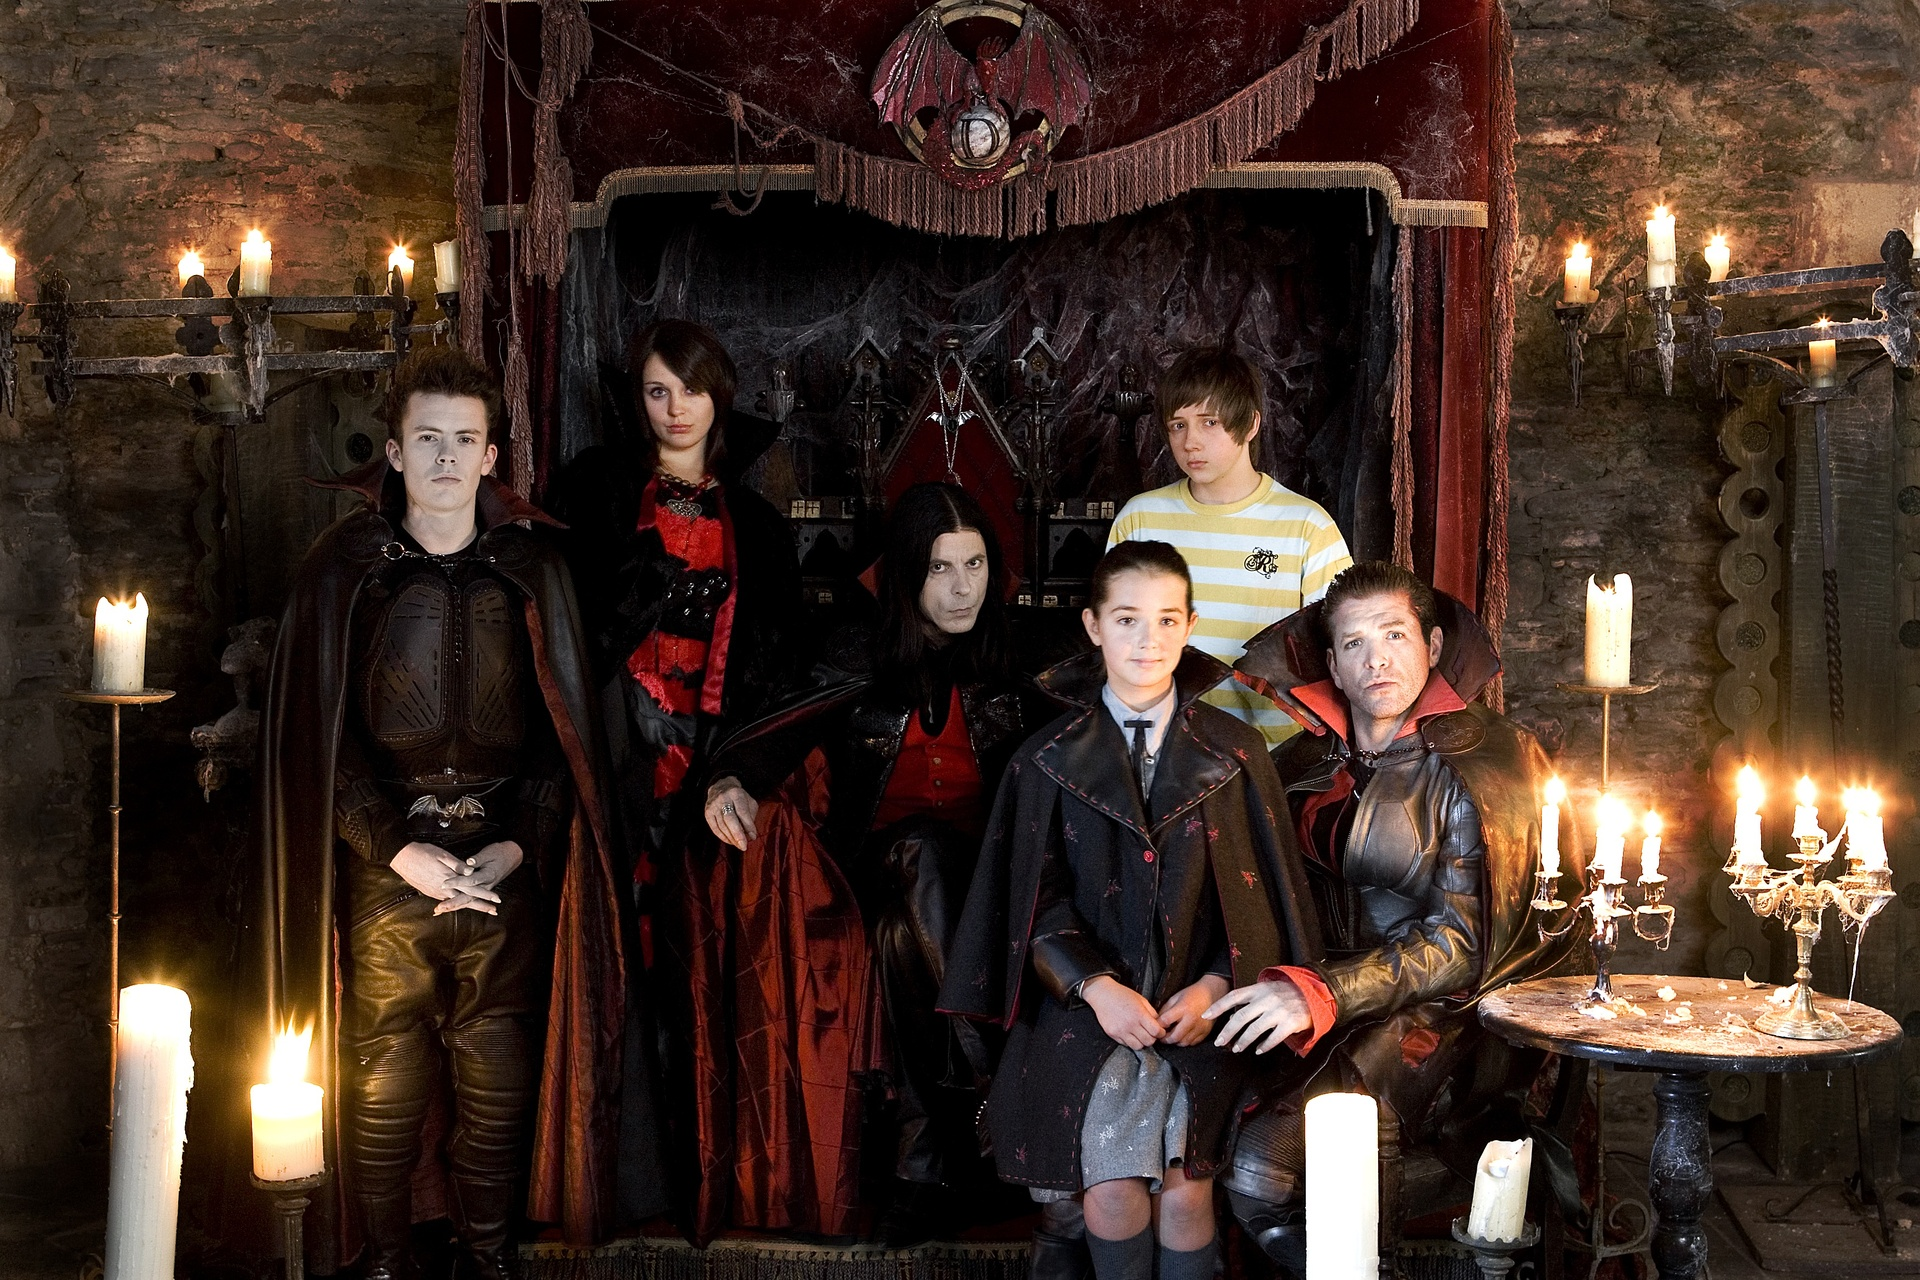 young dracula Young dracula 43k likes this page is the unofficial page for the cbbc television show young dracula starring gerran howell, clare thomas and keith.